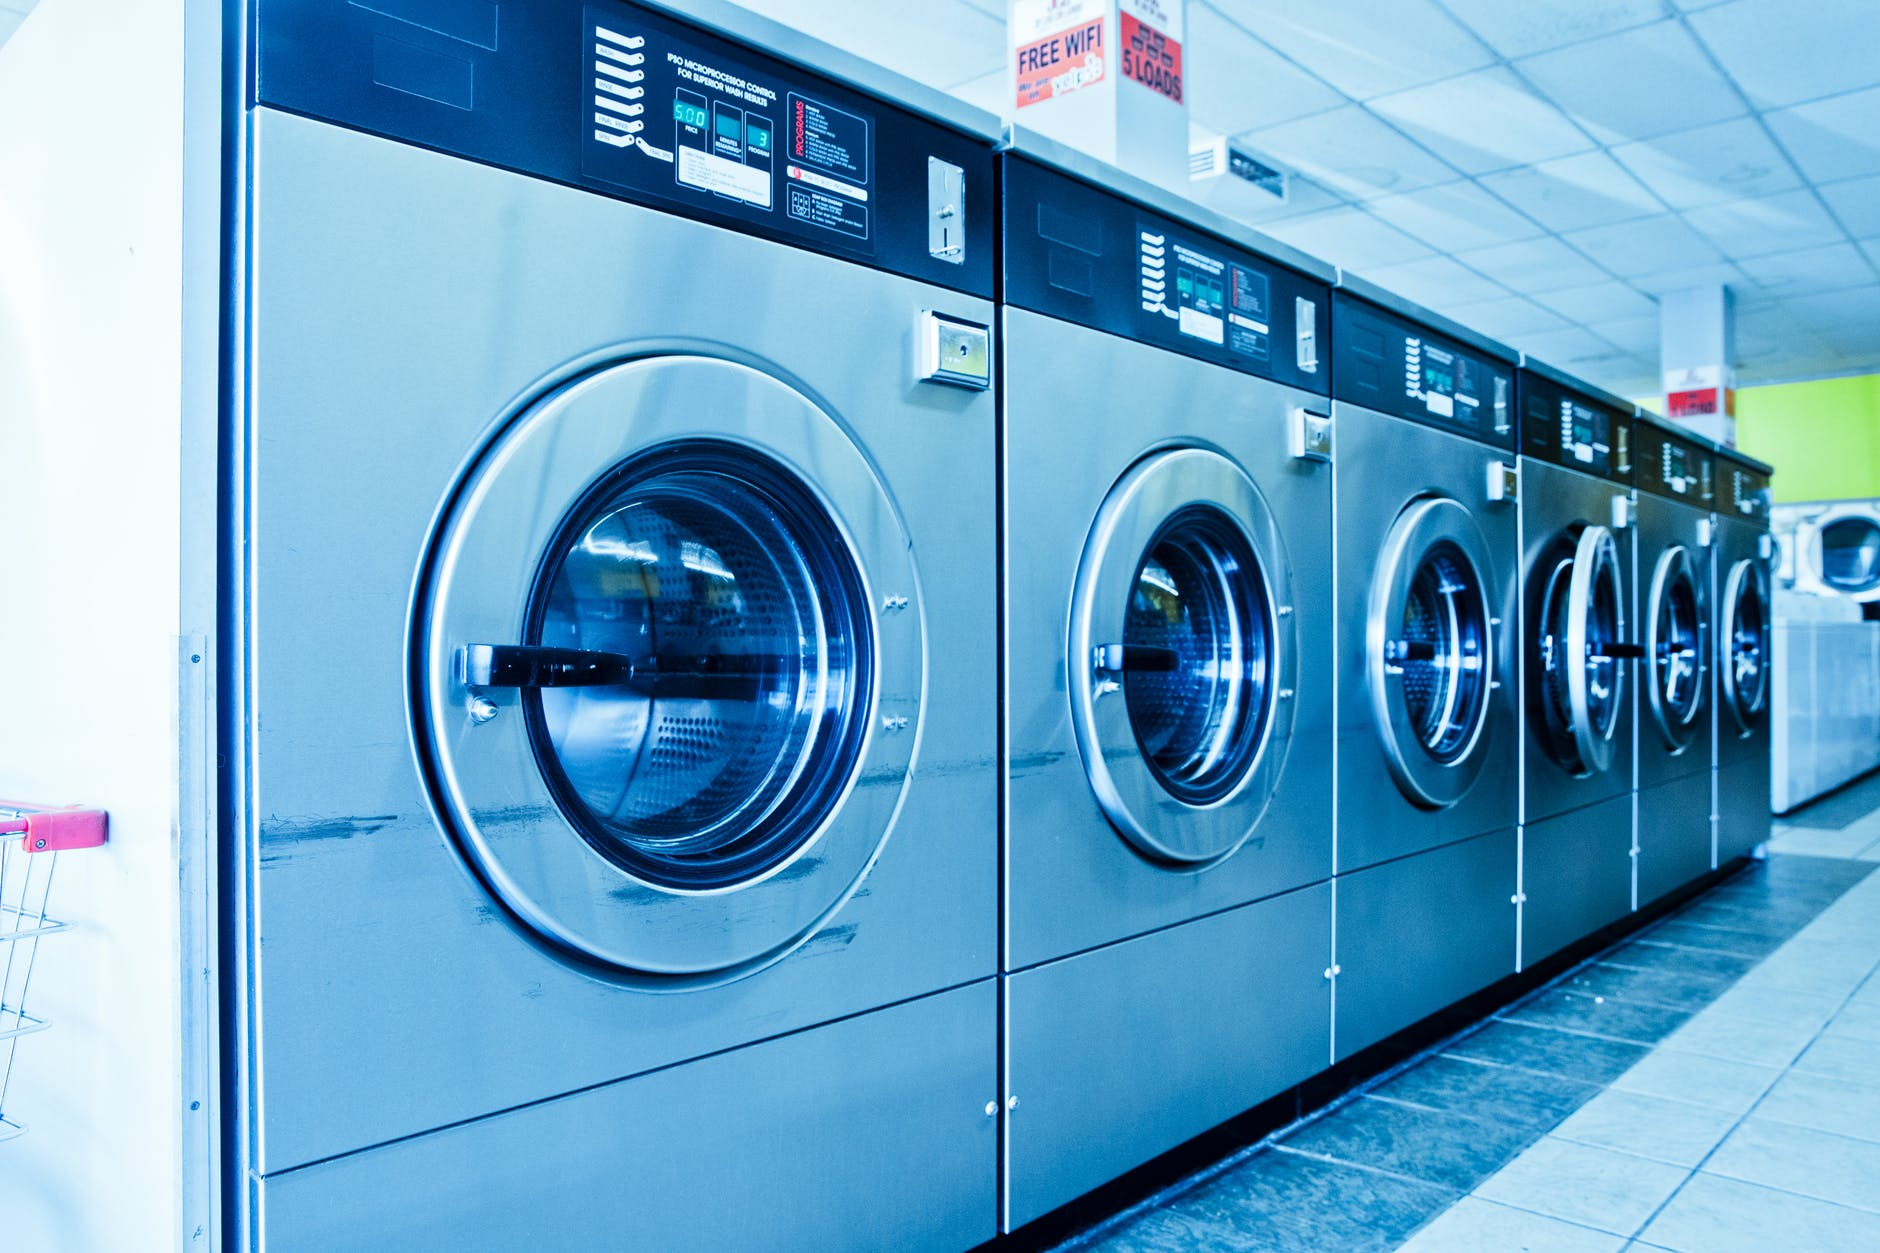 photo of laundromat machines